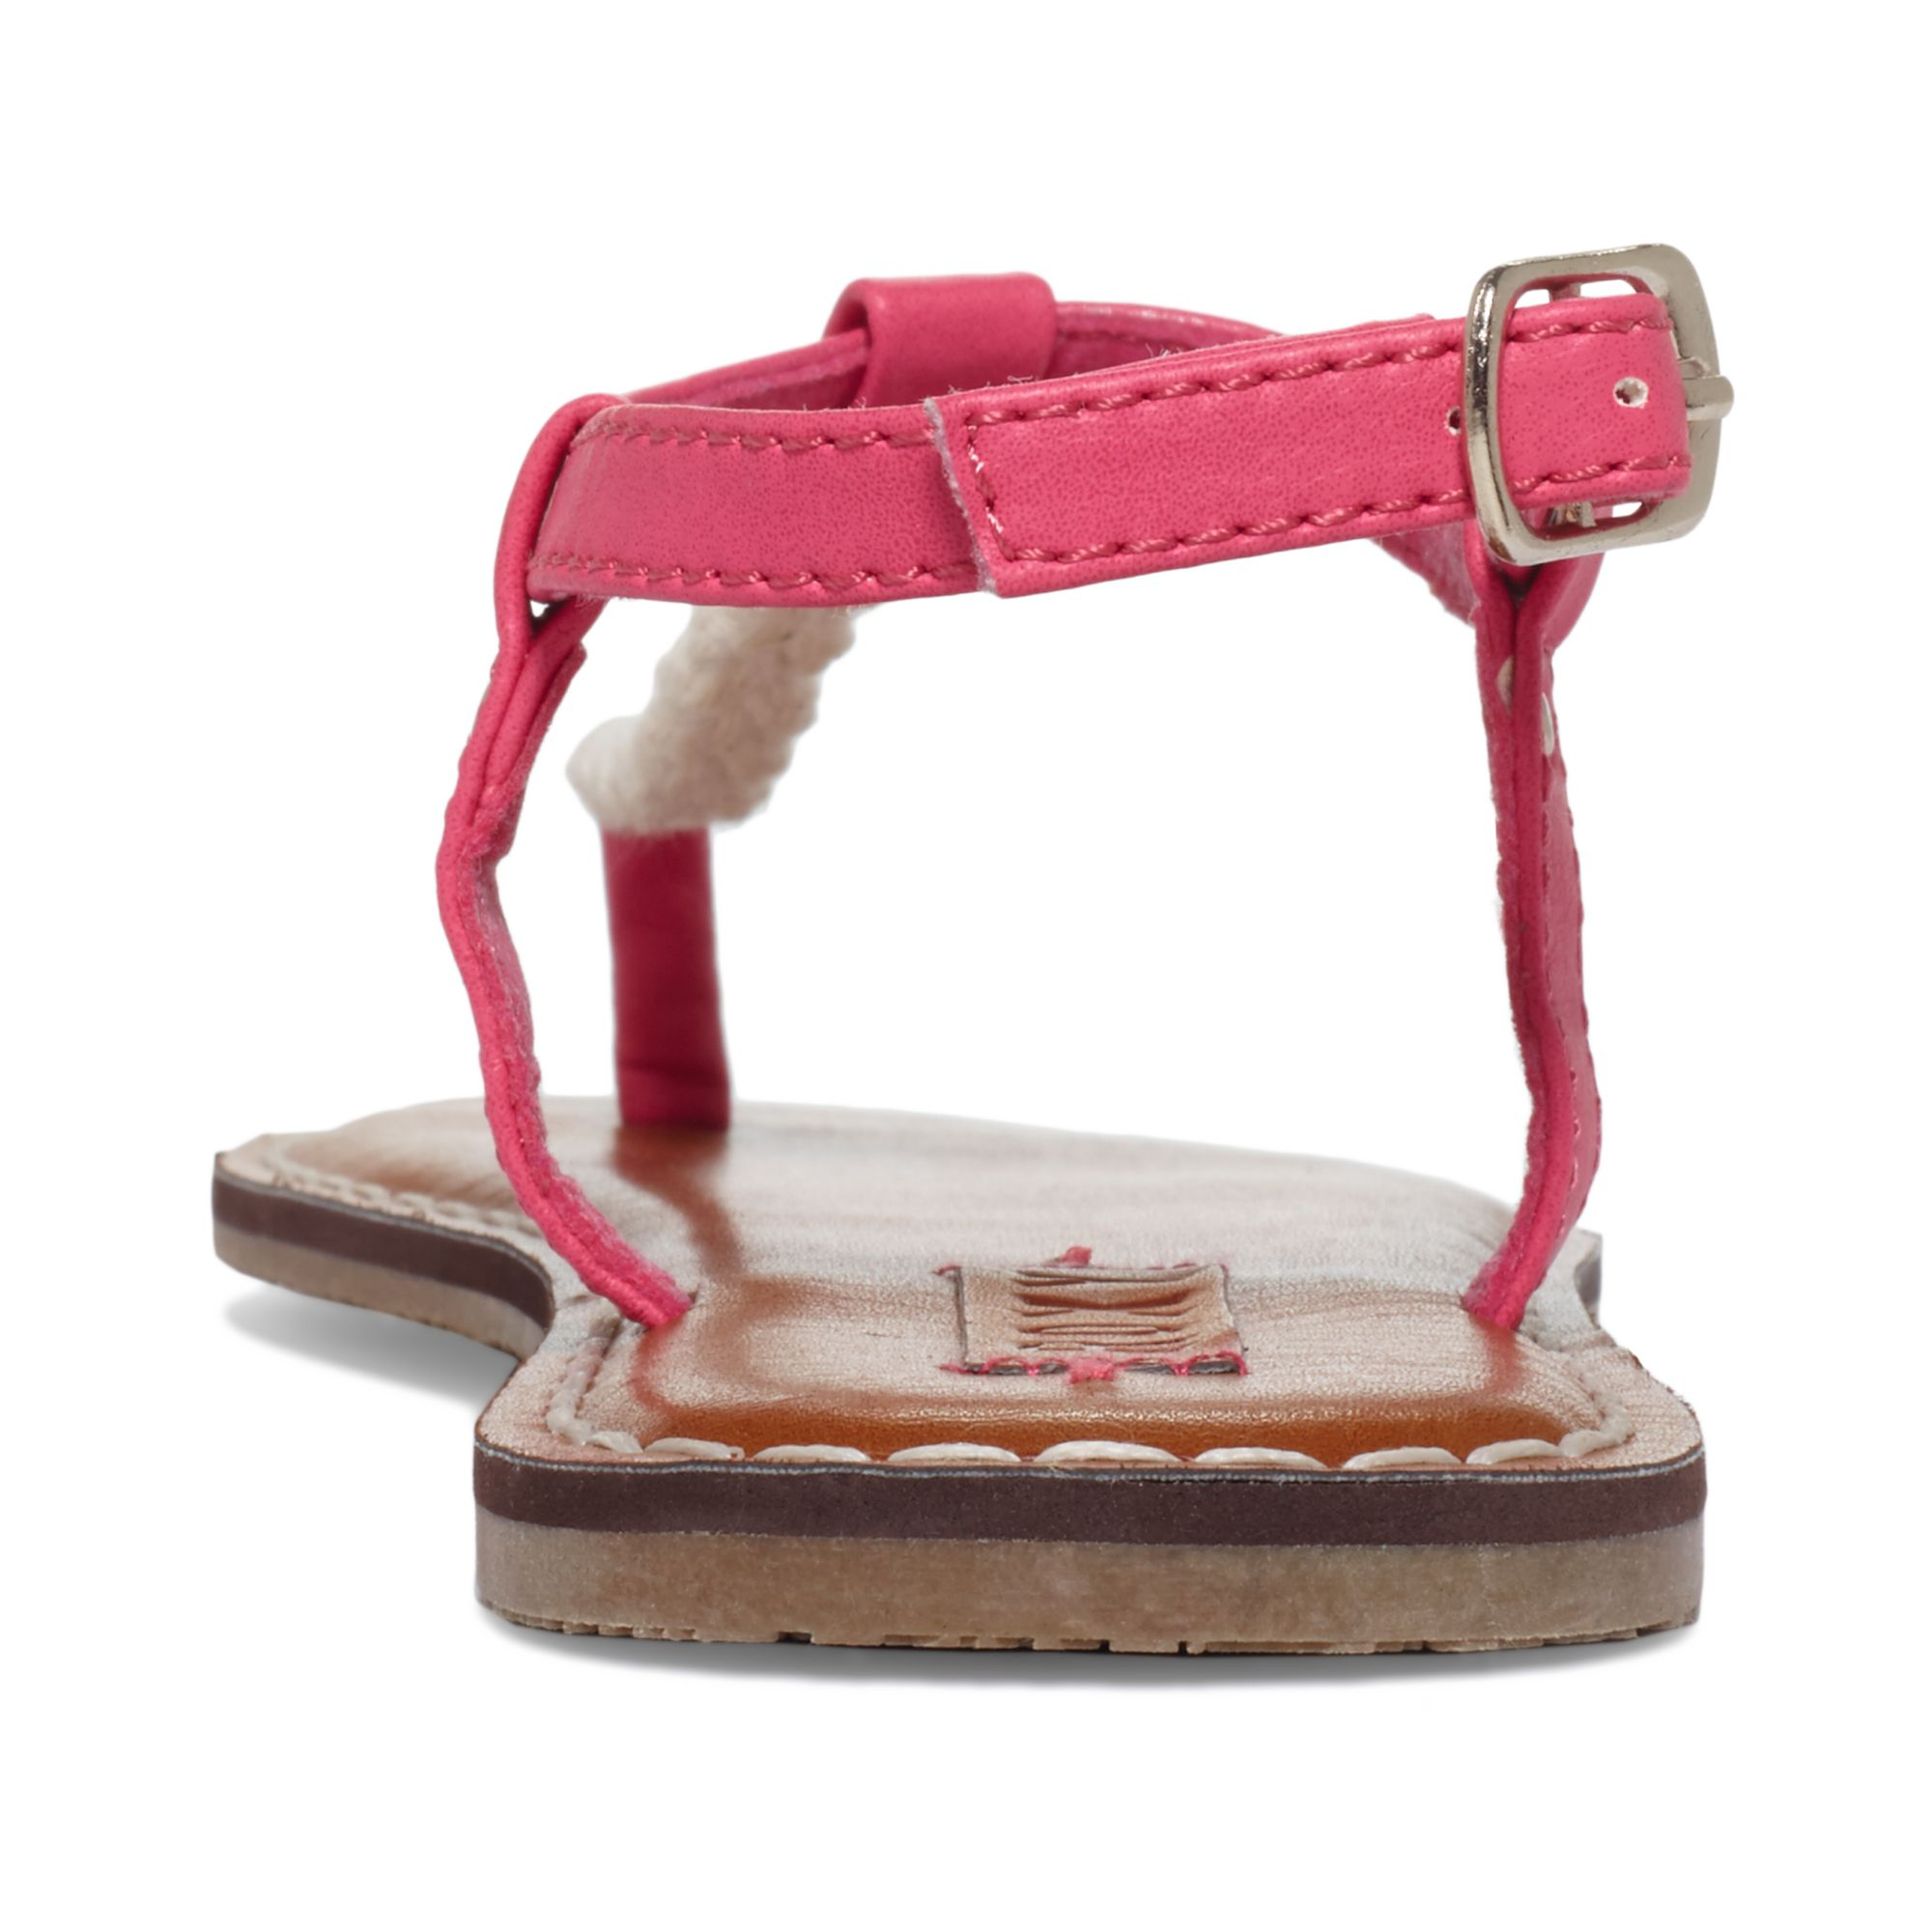 1966eed14220 Lyst - Roxy Sparrow Tstrap Flat Thong Sandals in Pink